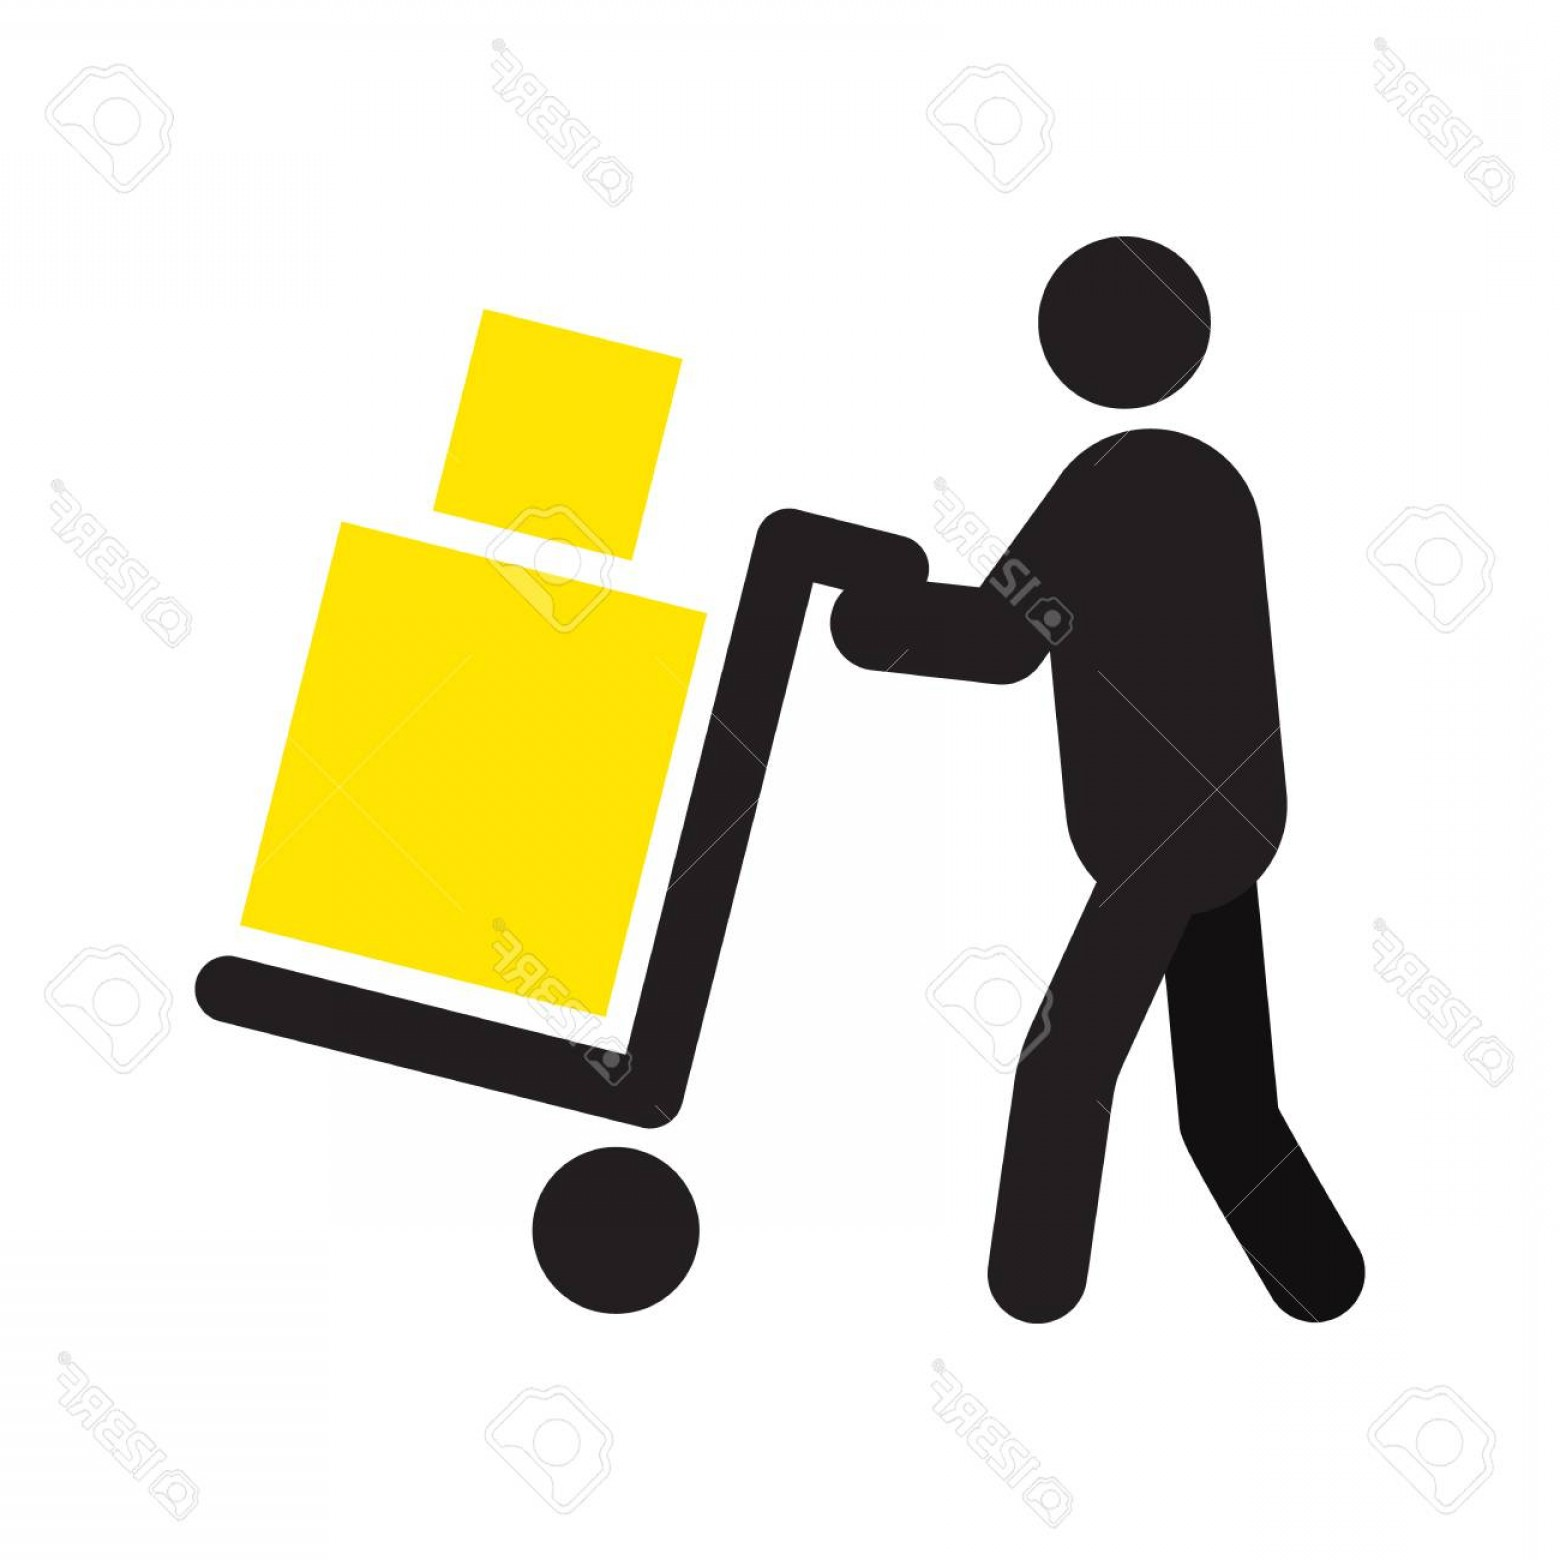 Hand Cart Silhouette Vectors: Photostock Vector Man Carrying Two Boxes With Hand Truck Silhouette Hand Cart Delivery Service Shipment Parcel Removal